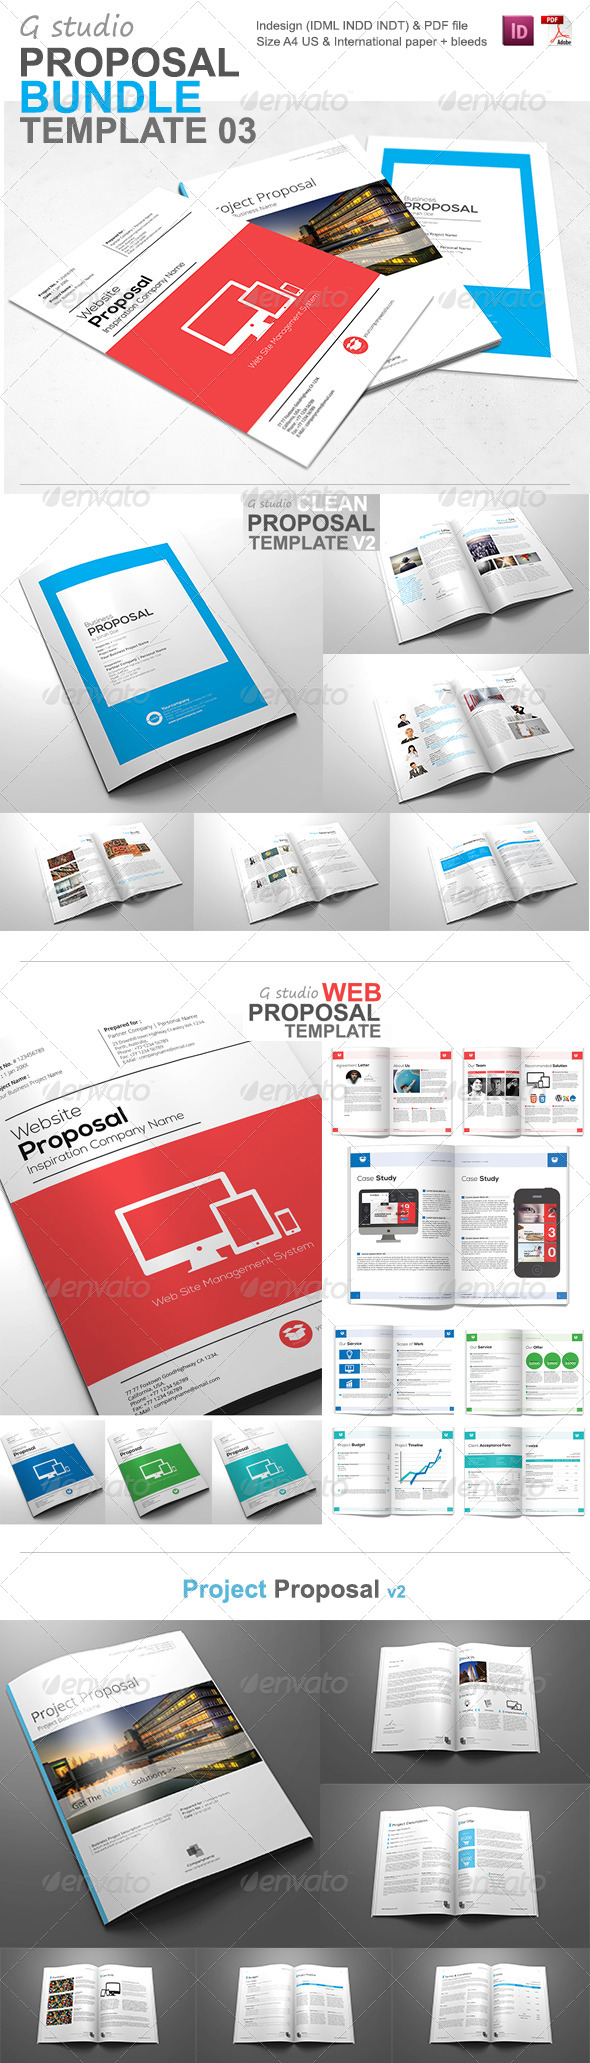 GraphicRiver Gstudio Proposal Bundle 03 5740073